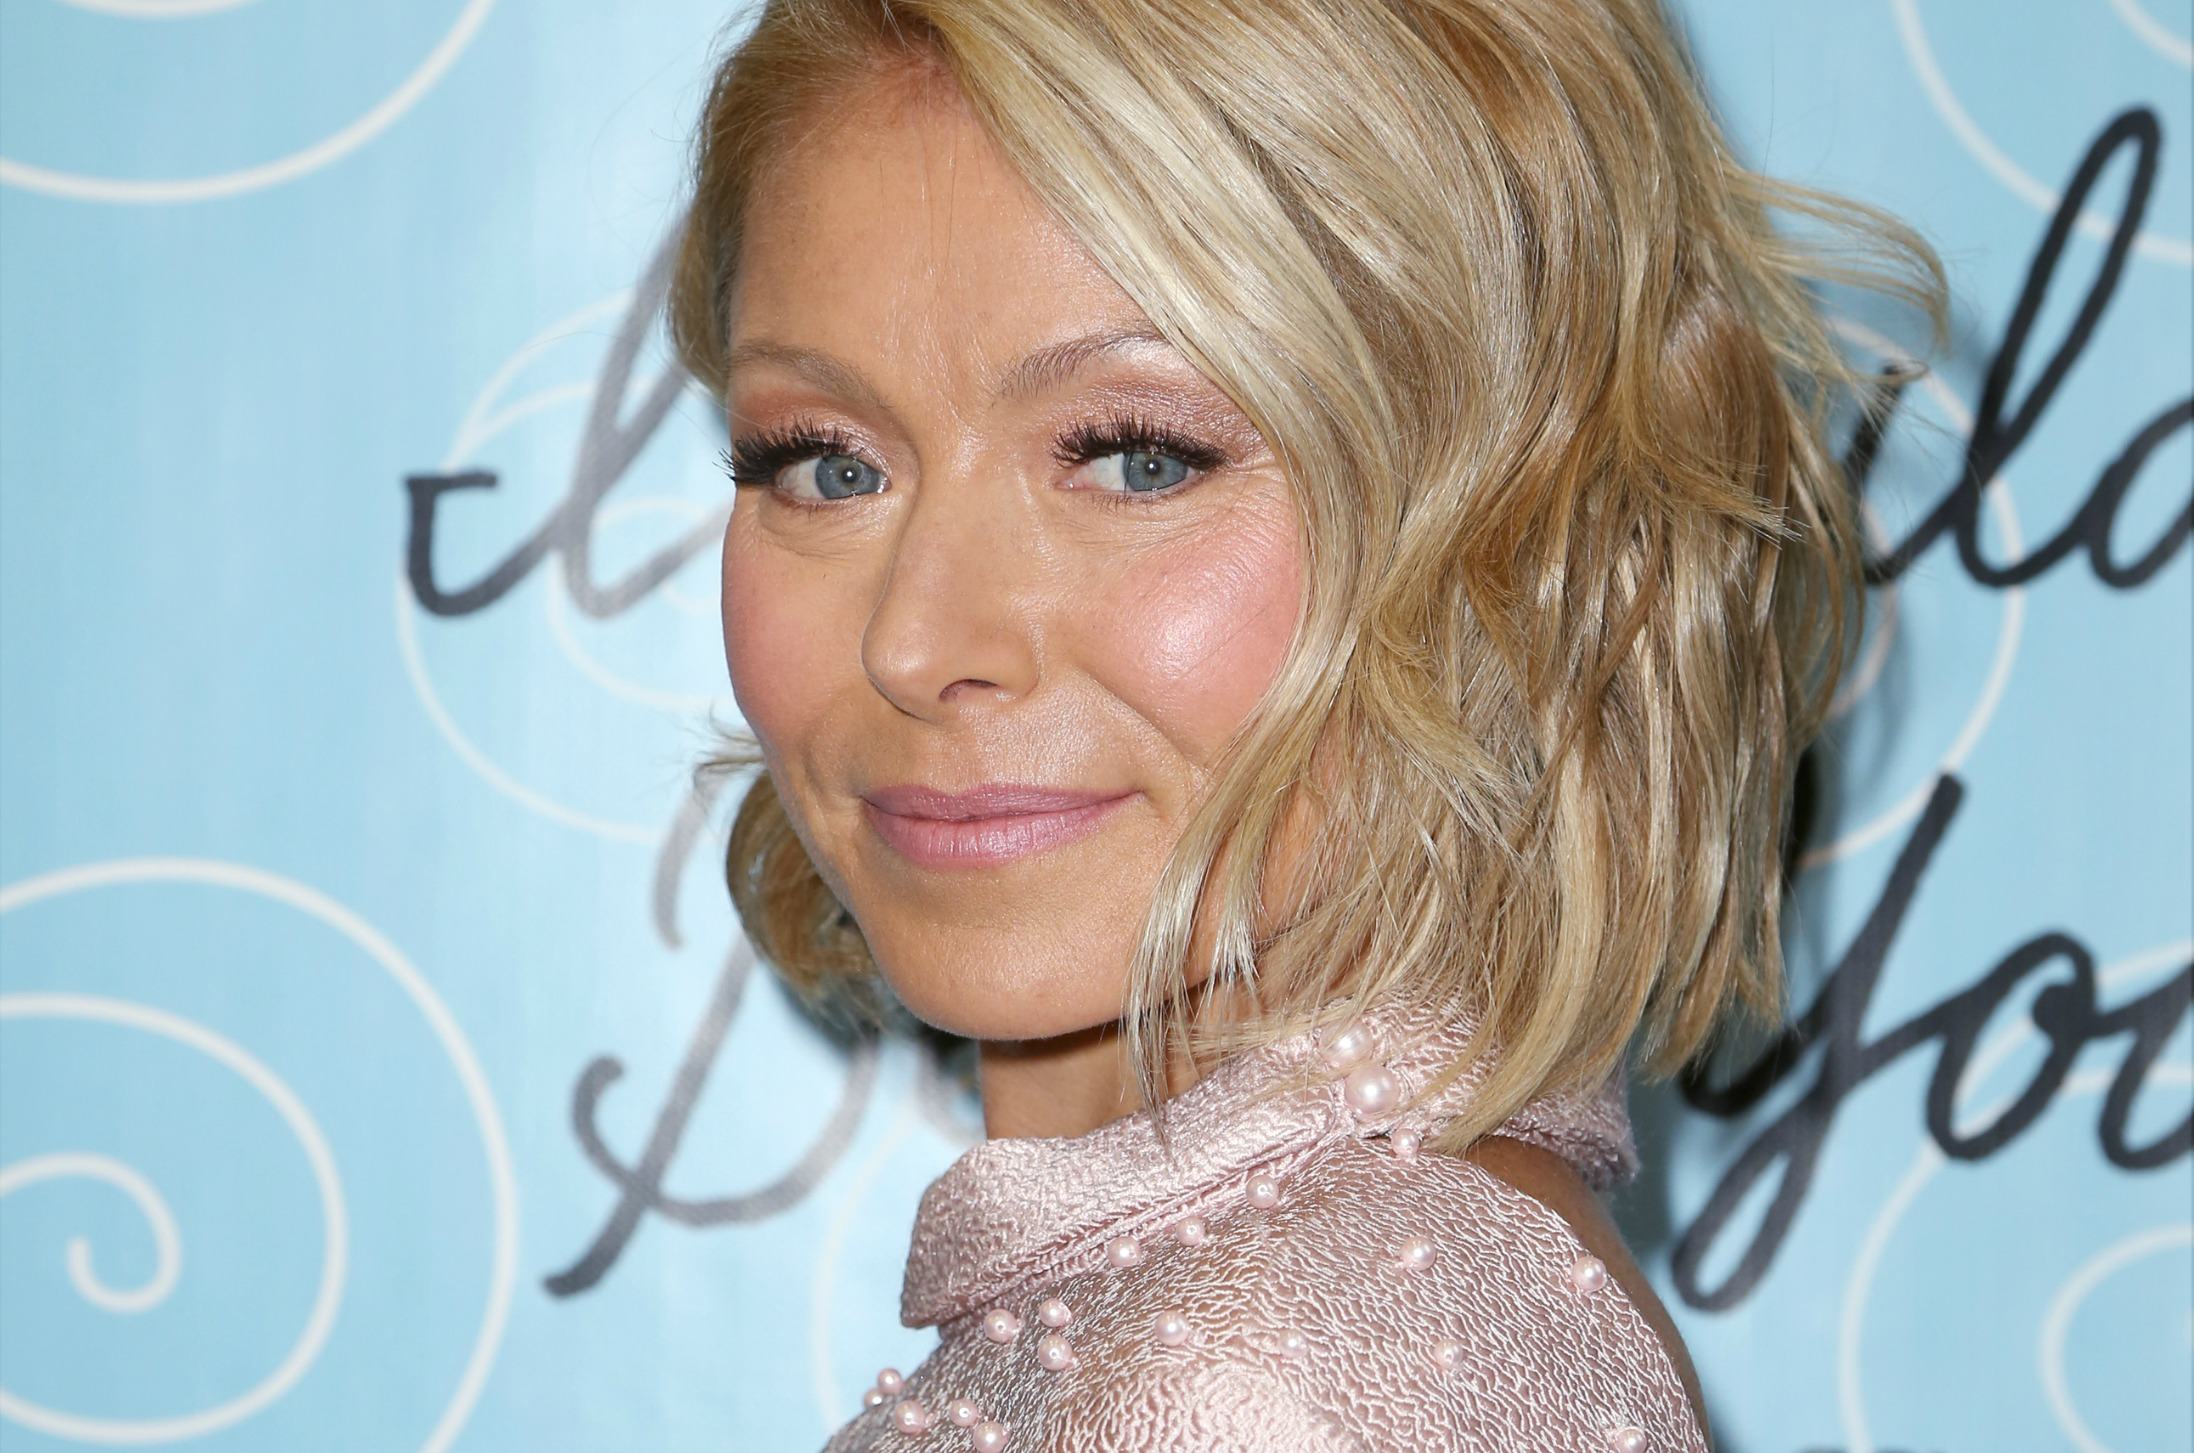 Kelly ripa short hair on live with kelly amp michael hot for Club piscine pierrefonds